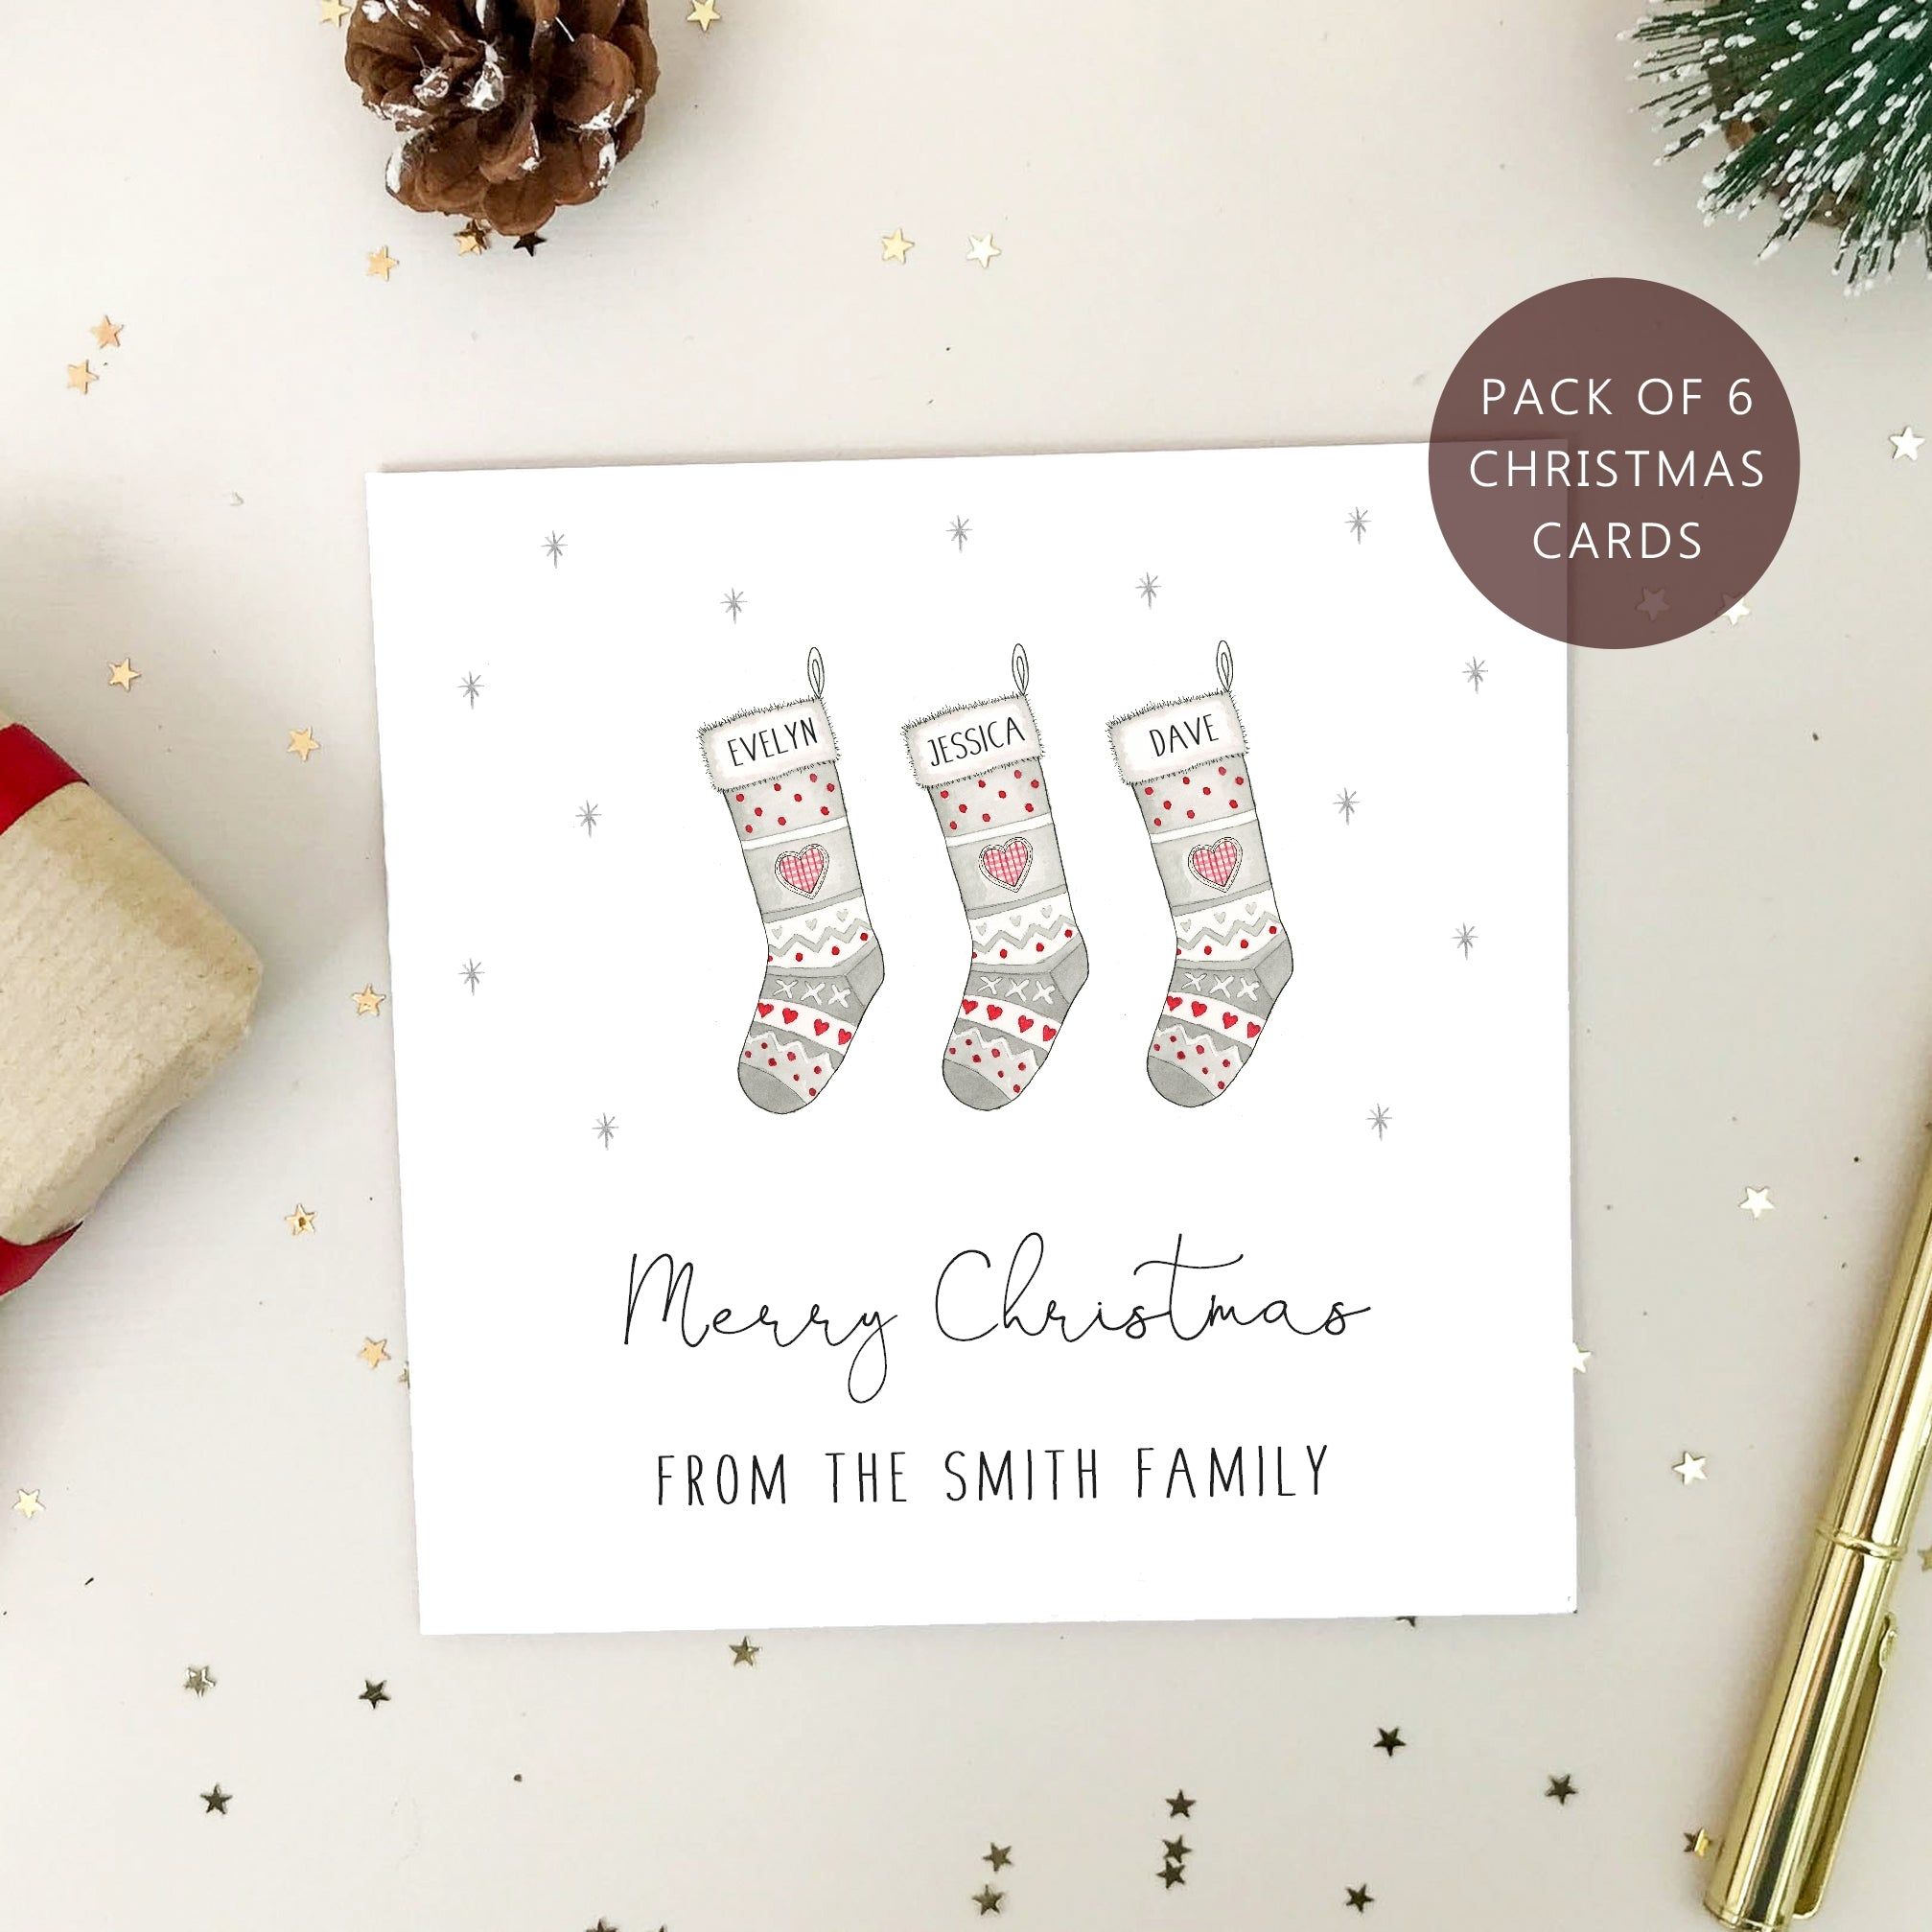 Personalised Family Christmas Card Packs - Pack of Stocking Christmas Cards